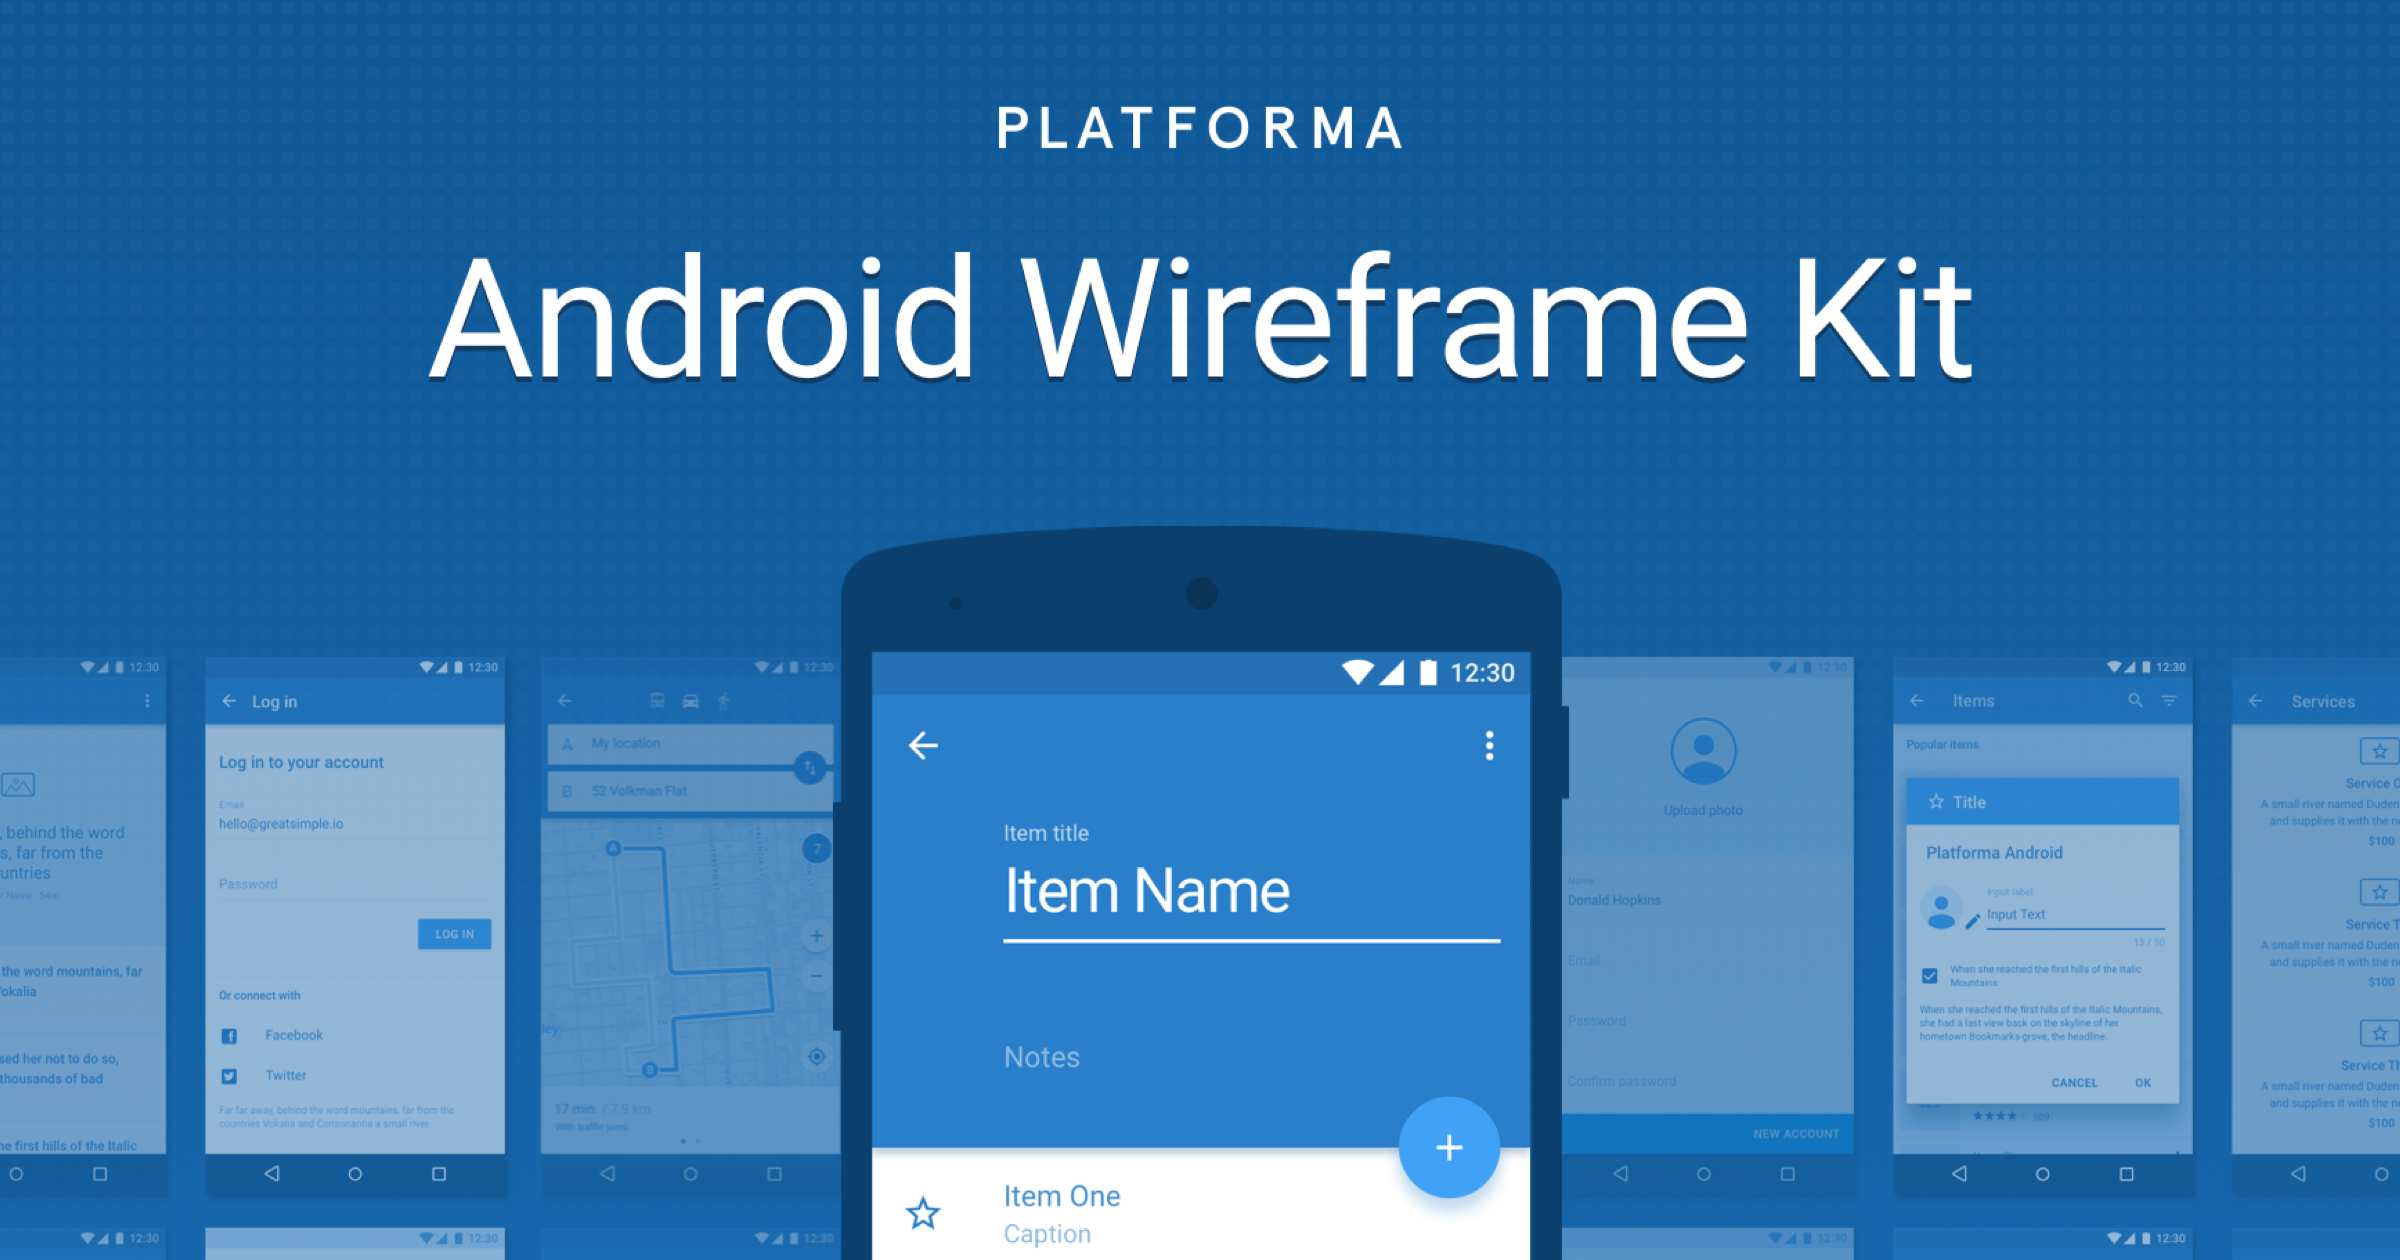 Platforma Android Wireframe Kit